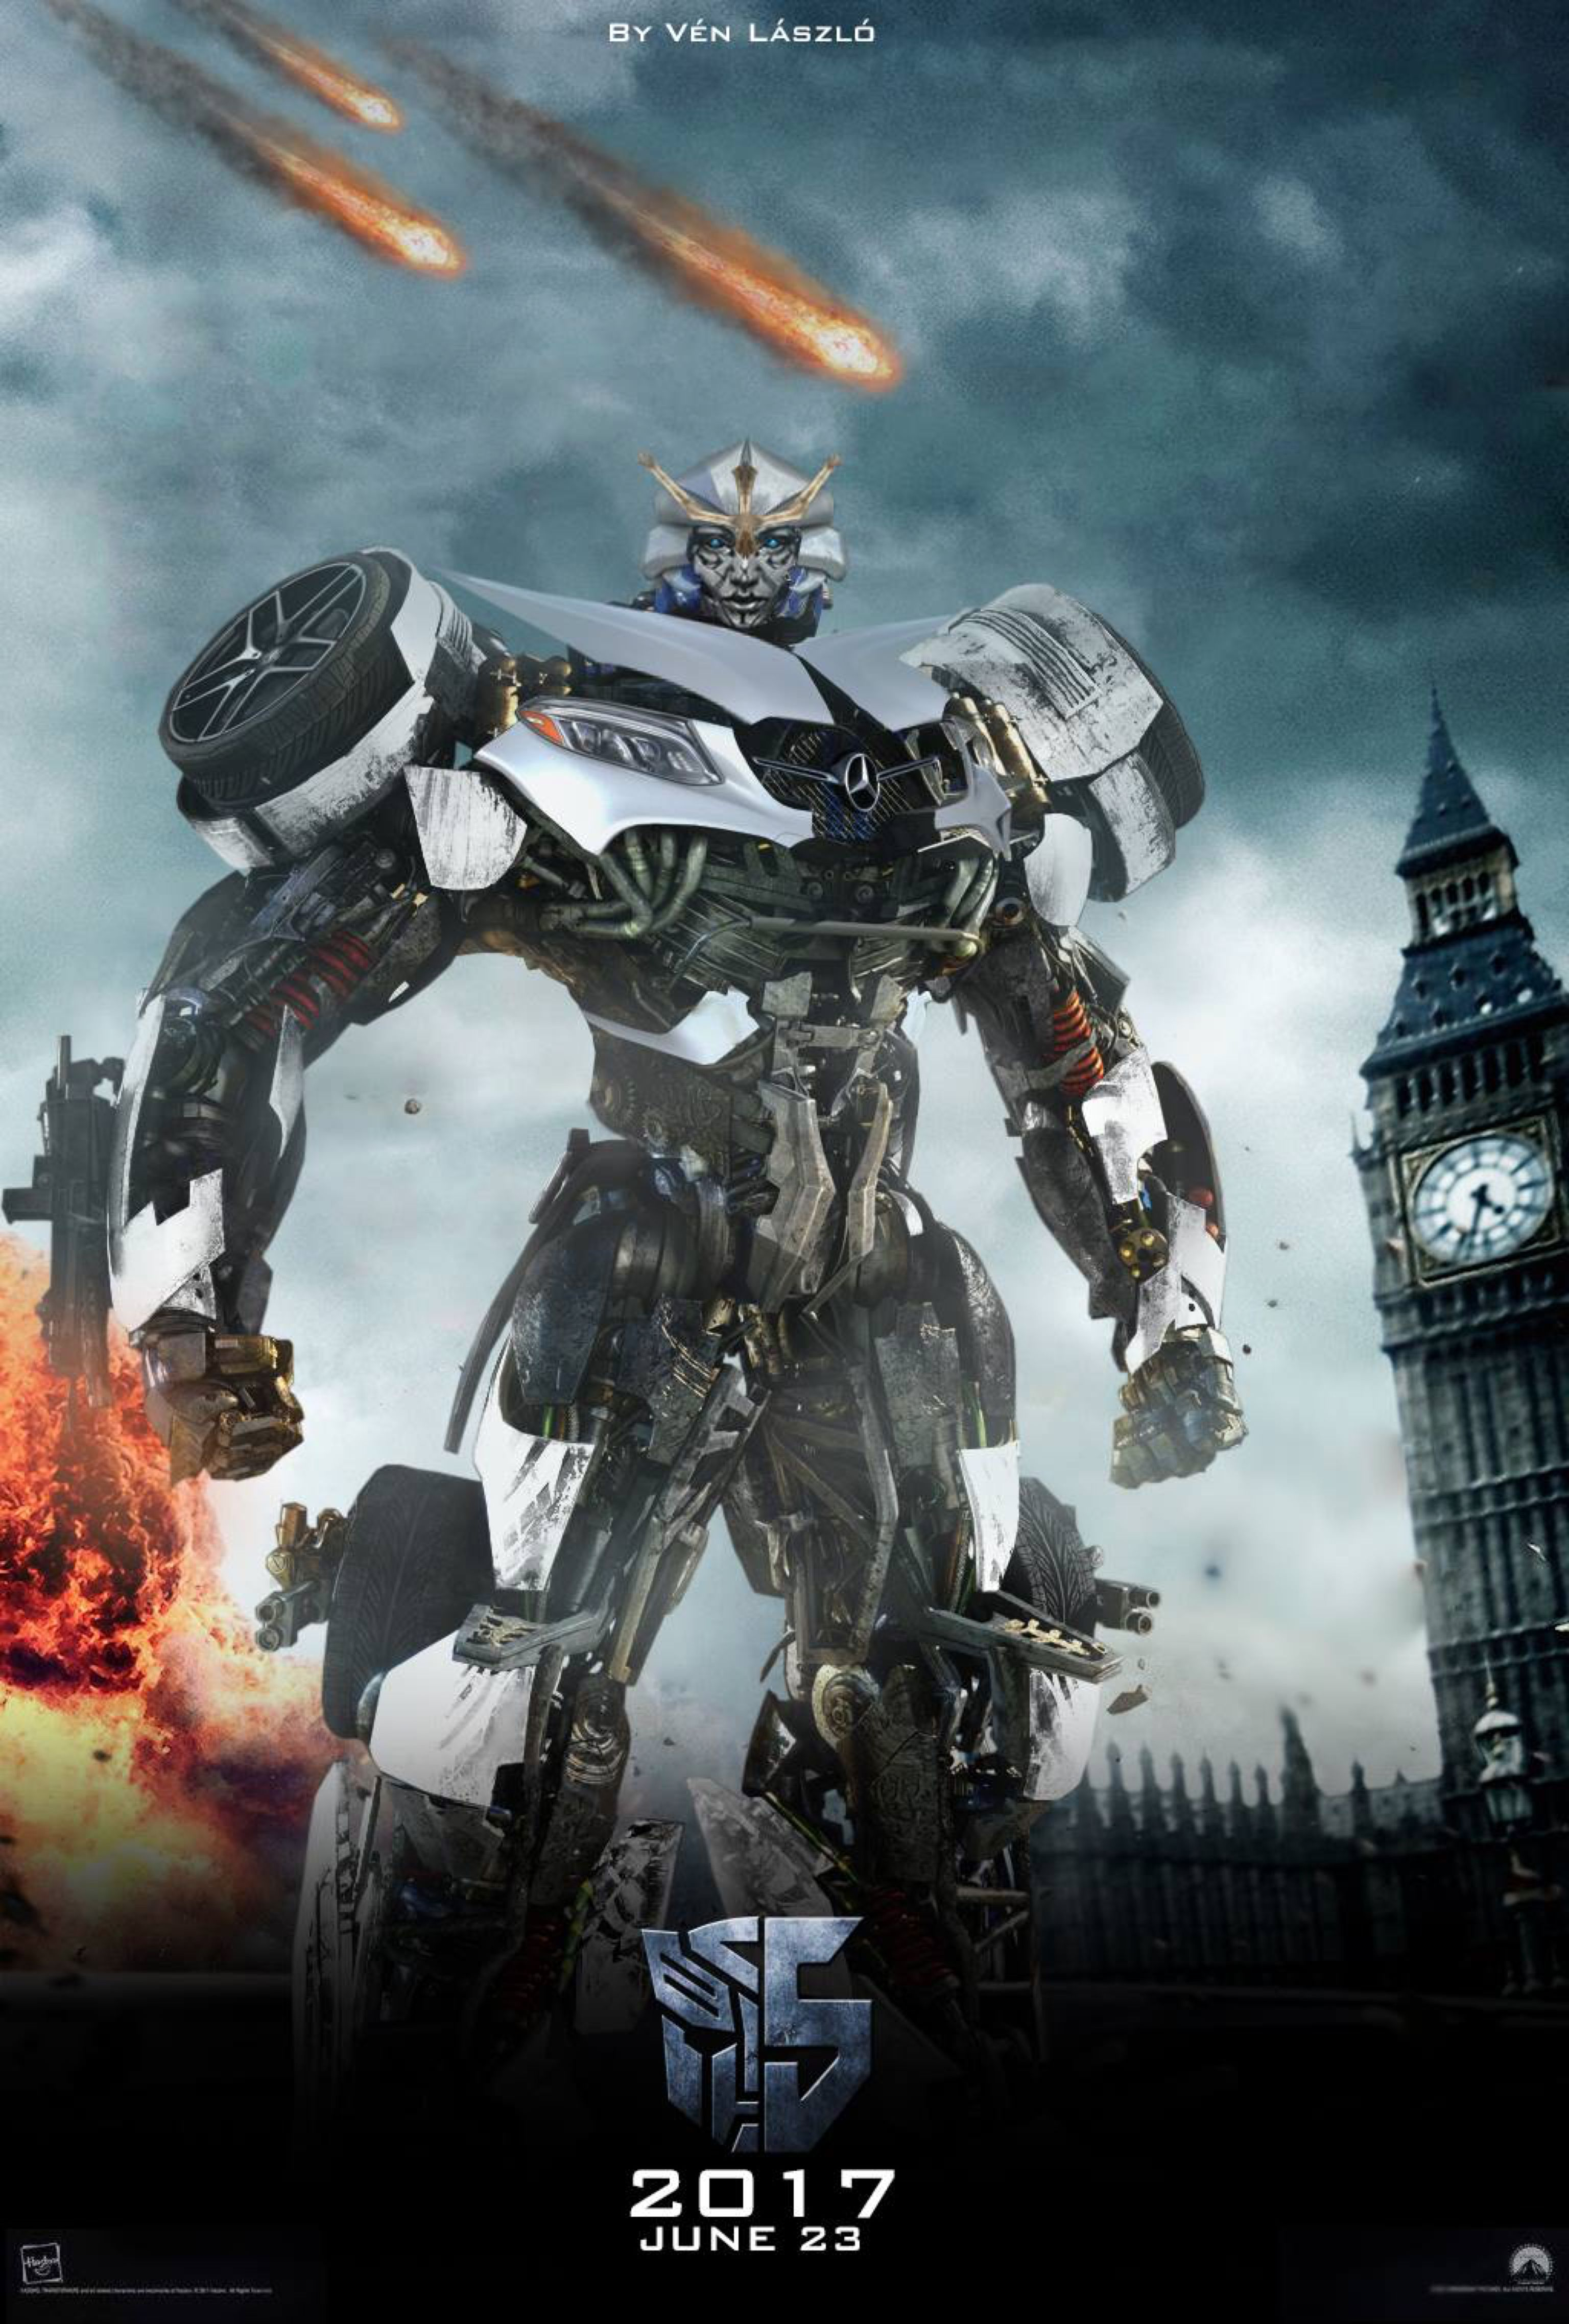 Transformers 5 Strongarm London Poster By Lazlow007 On Deviantart London Poster Transformers Transformers 5